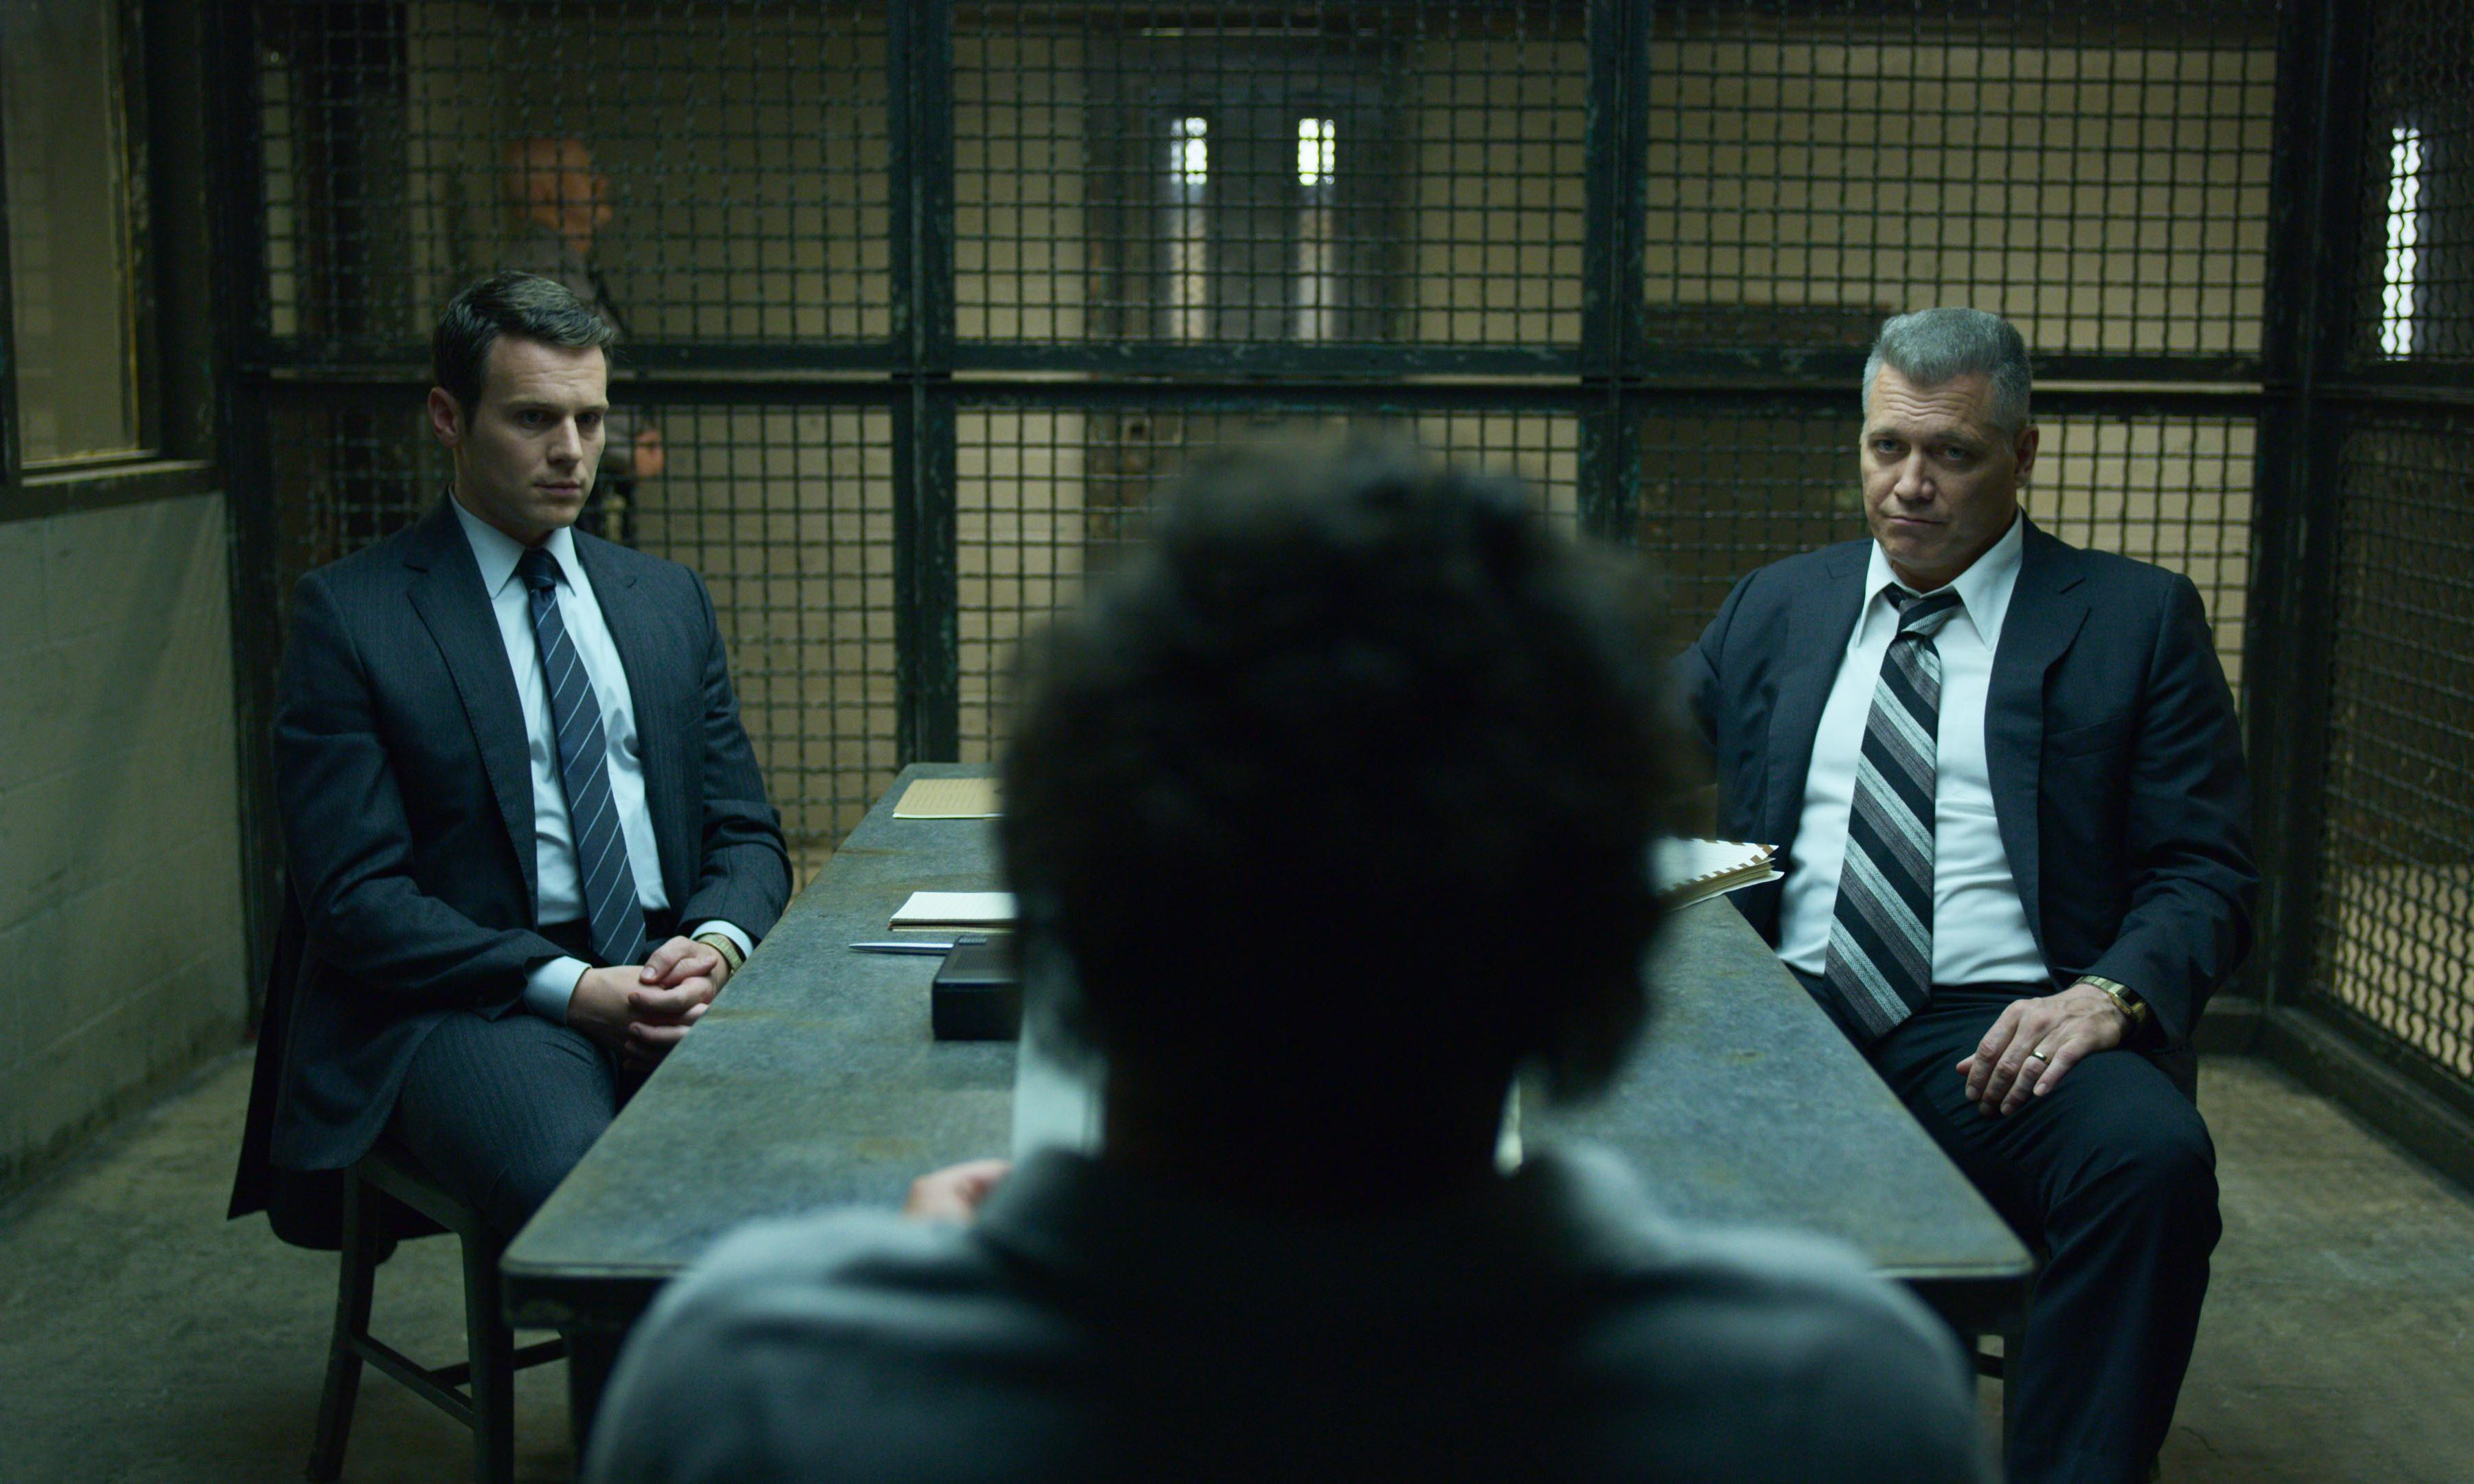 The week in TV: Mindhunter; Euphoria; Brassic and more